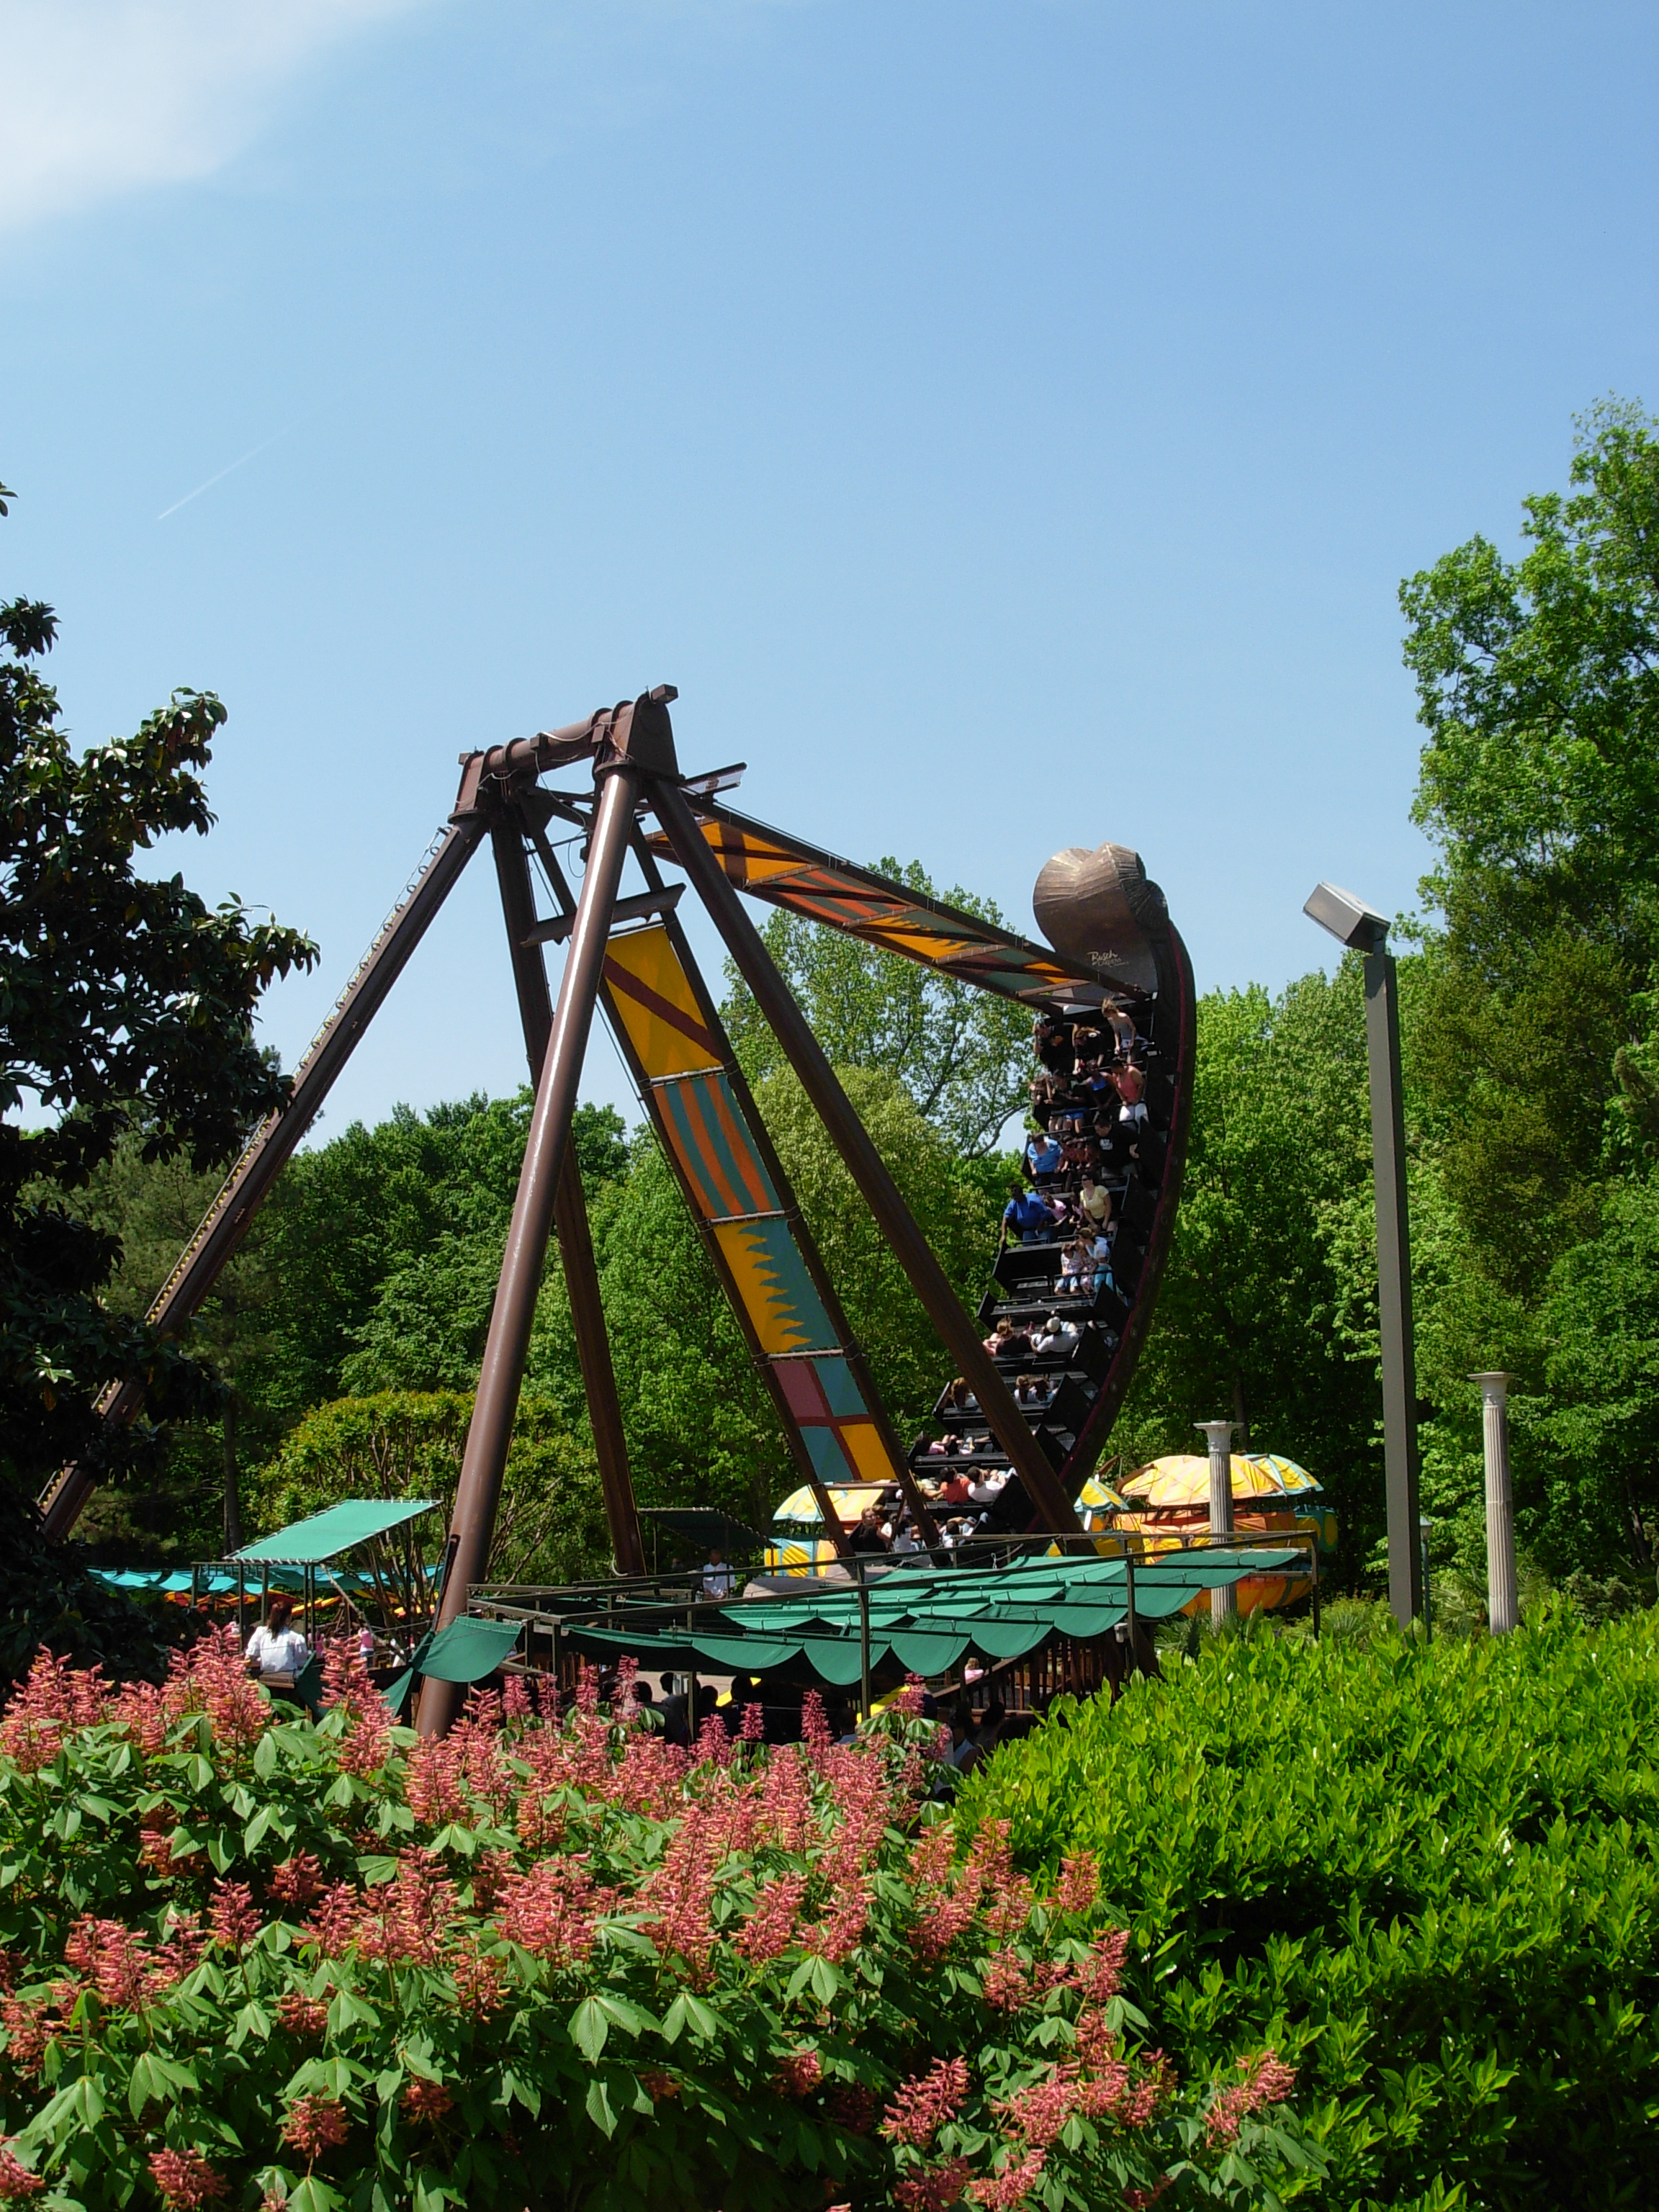 File:The Battering Ram 2 (Busch Gardens Williamsburg).